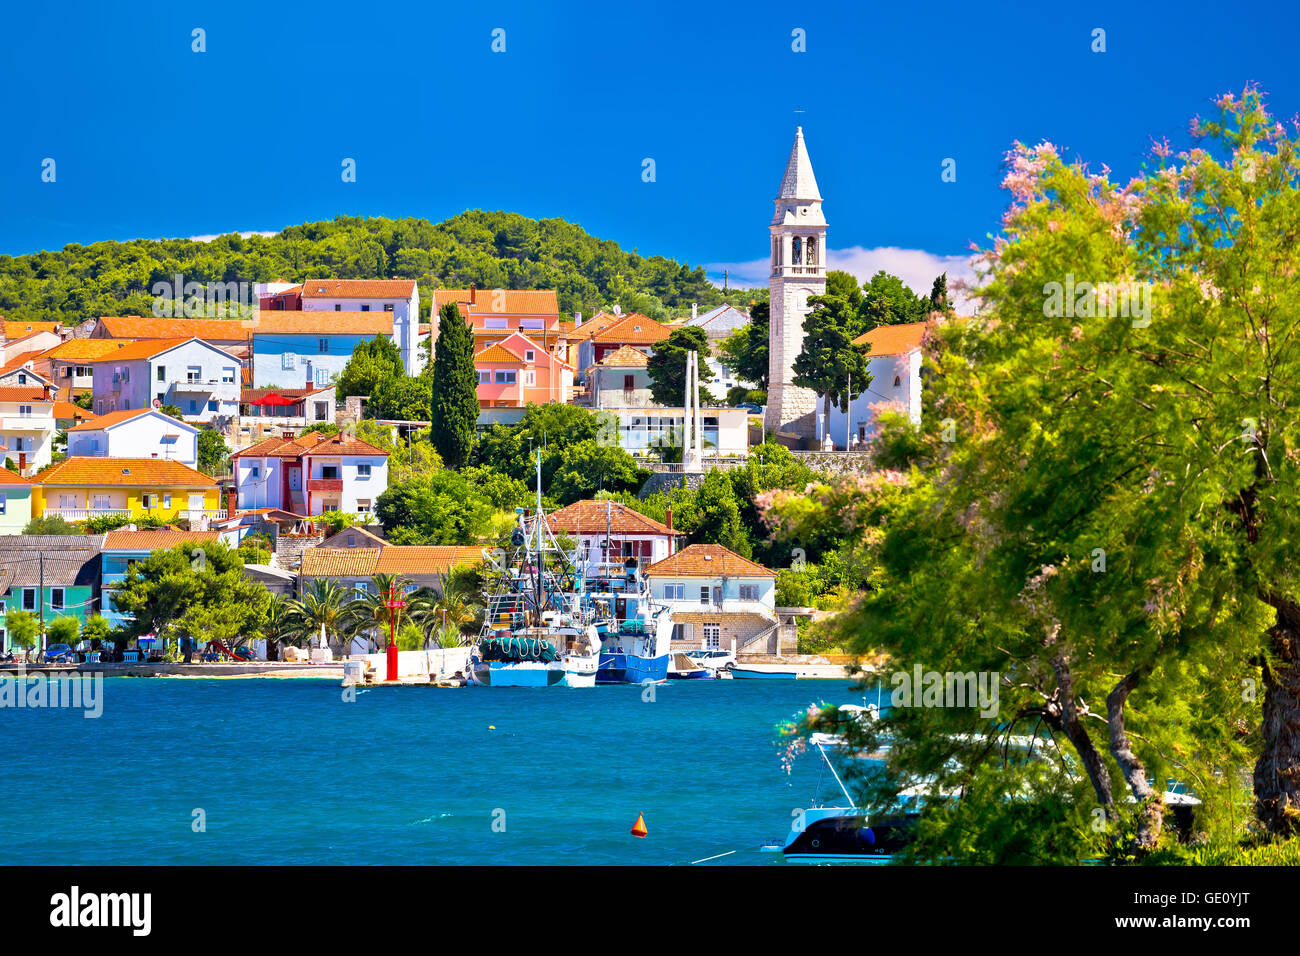 Kali harbor and waterfront summer view, Island of Ugljan, Croatia - Stock Image